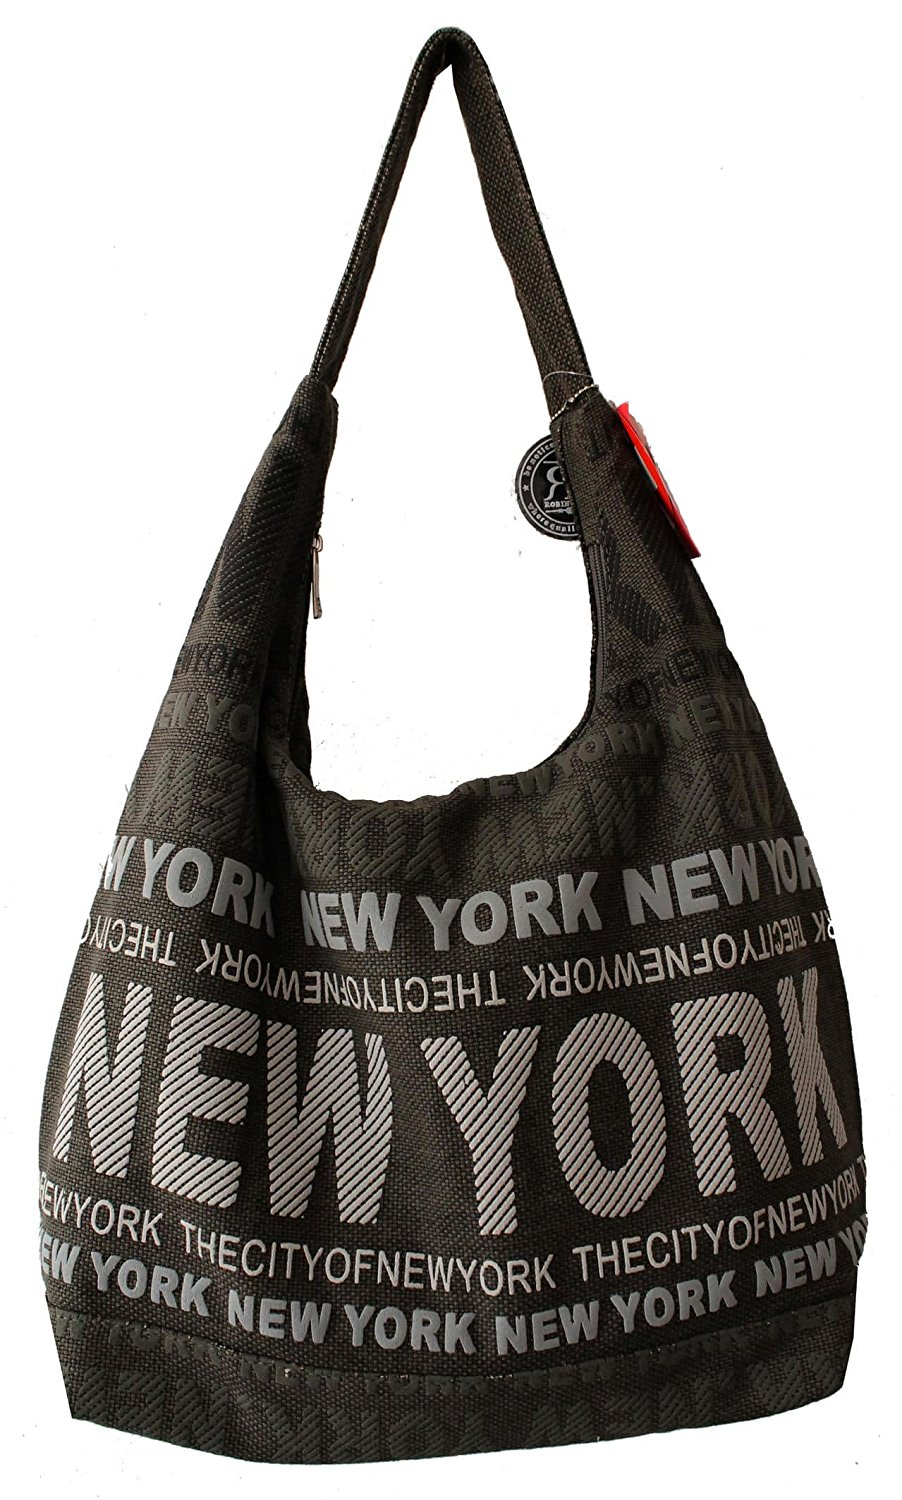 873c01807d6d6 Get Quotations · Robin Ruth New York City Cotton Fabric Shoulder Hobo Bag